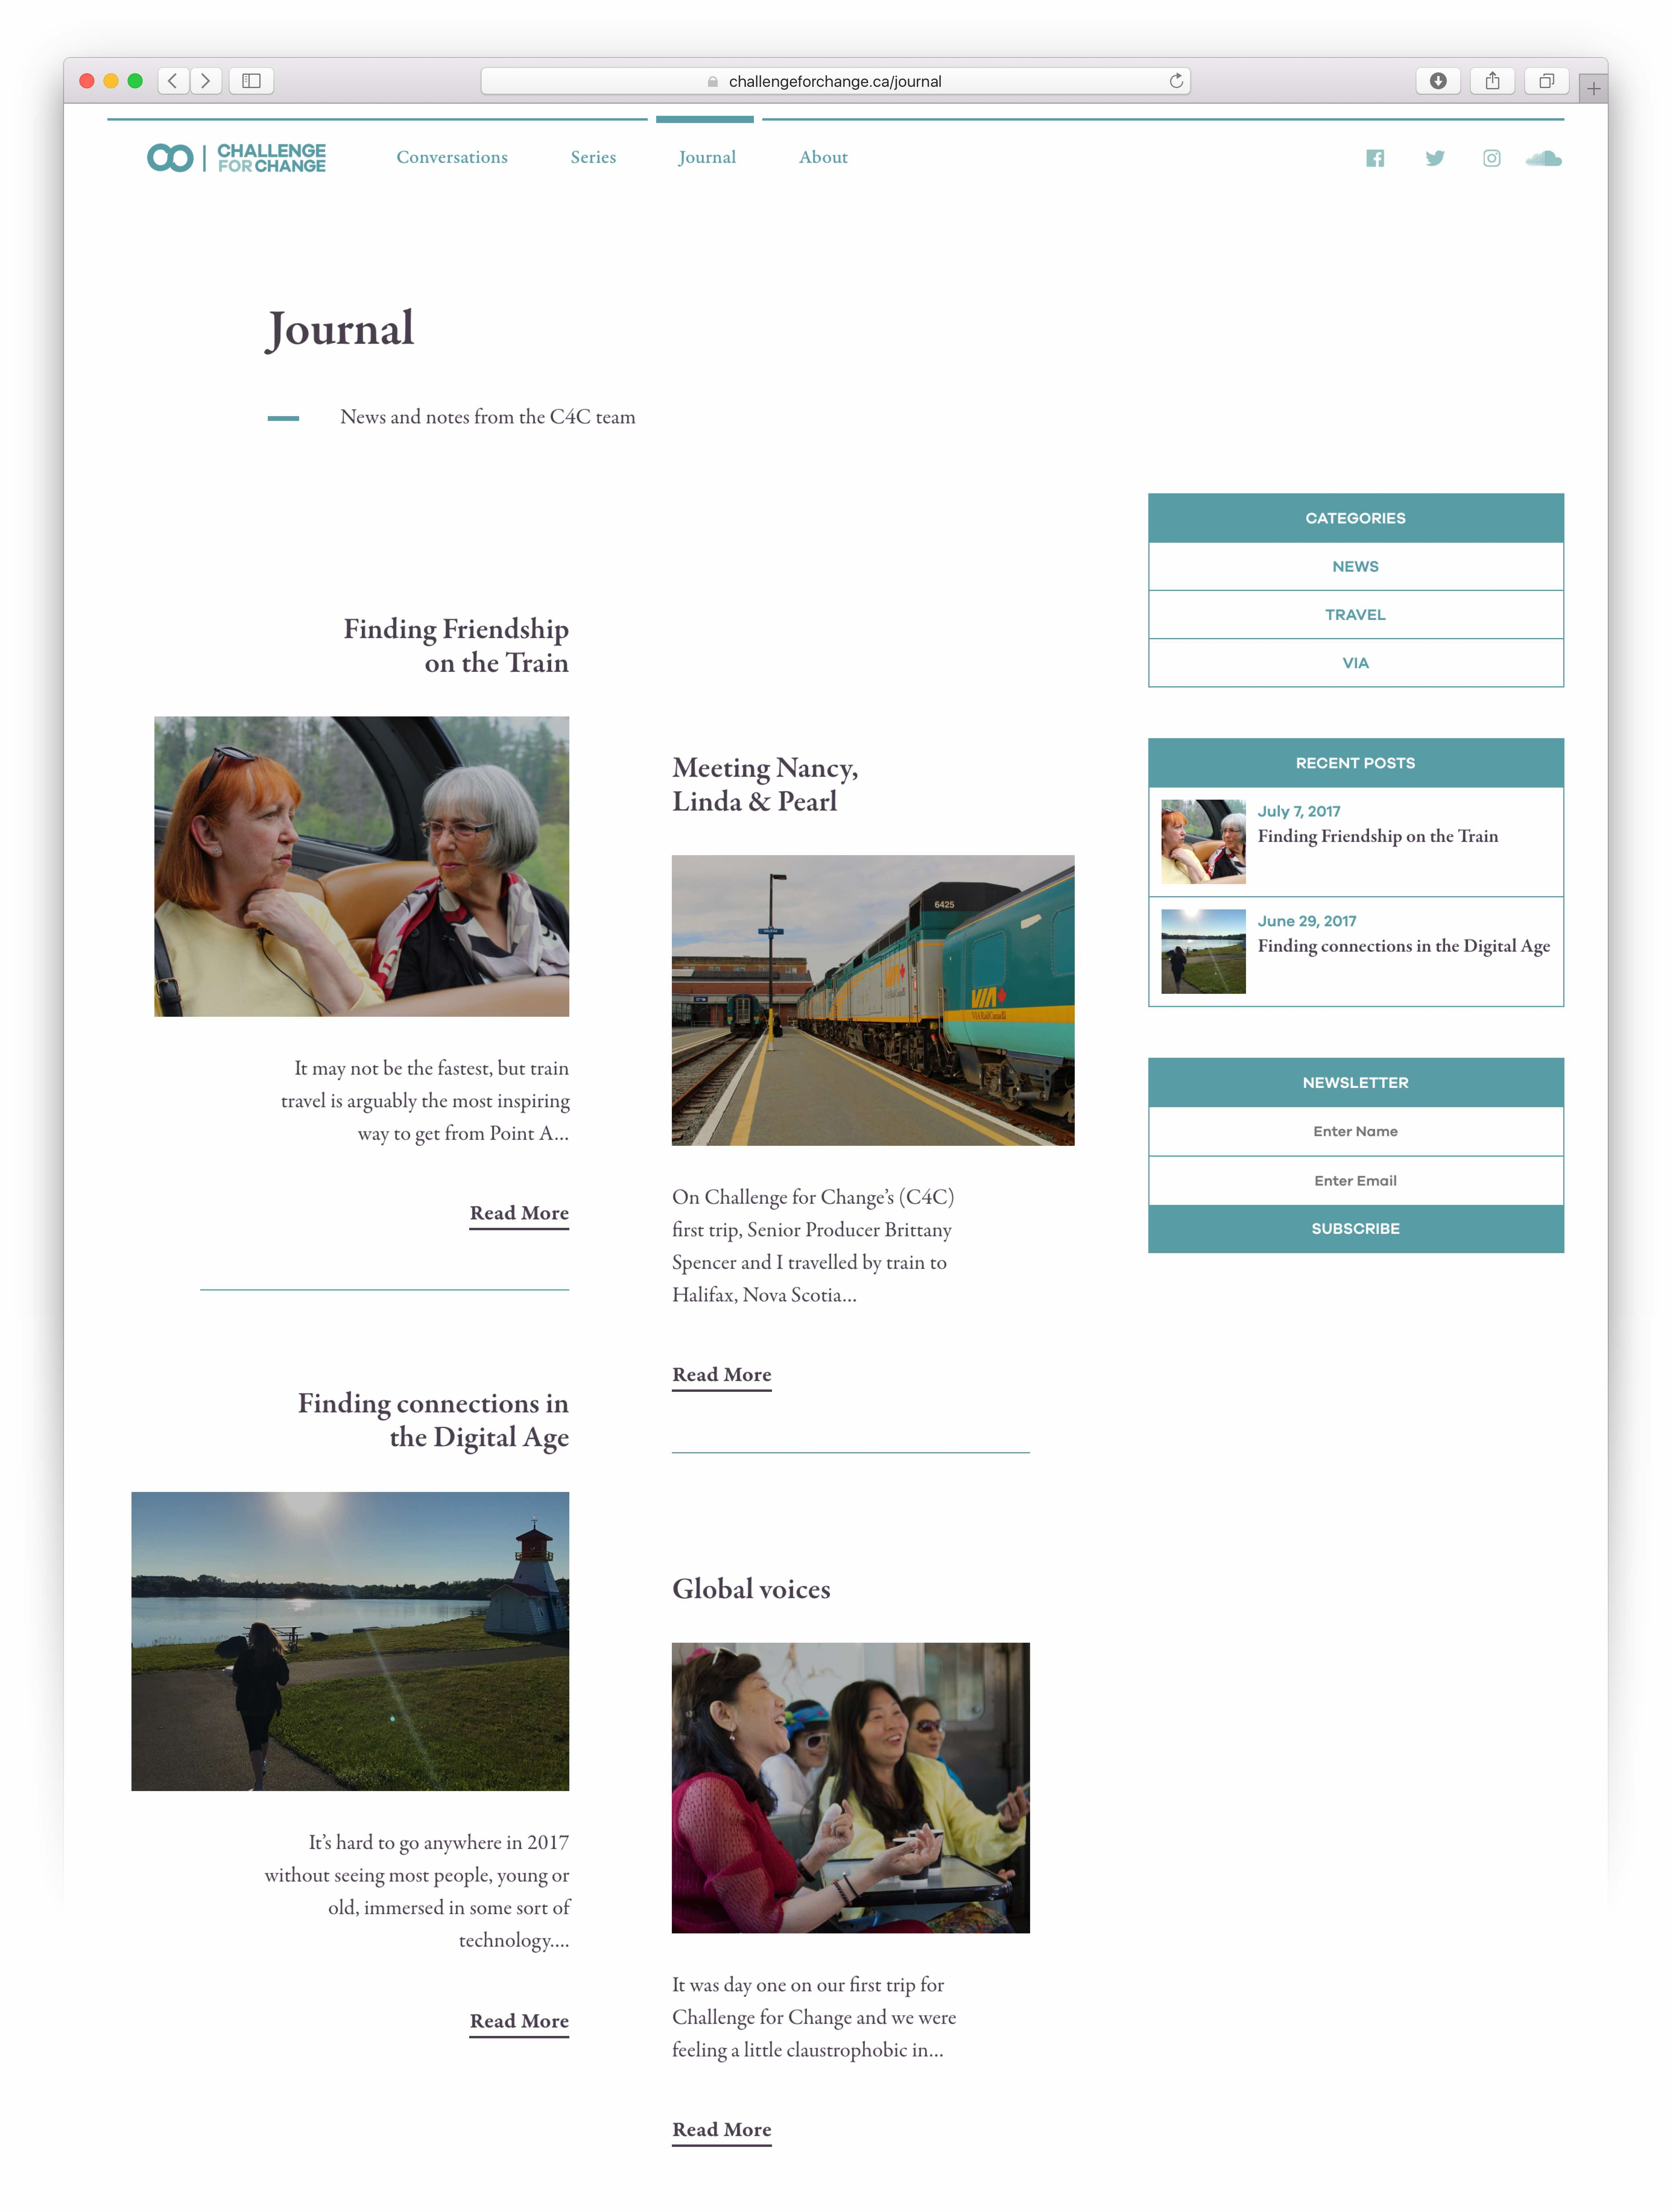 User interface for the journal module of Challenge for Change, built on a three column grid with first two filled by asymmetrically laid out articles and third filled with categories, newsletter and recent post modules — by Dima Yagnyuk.